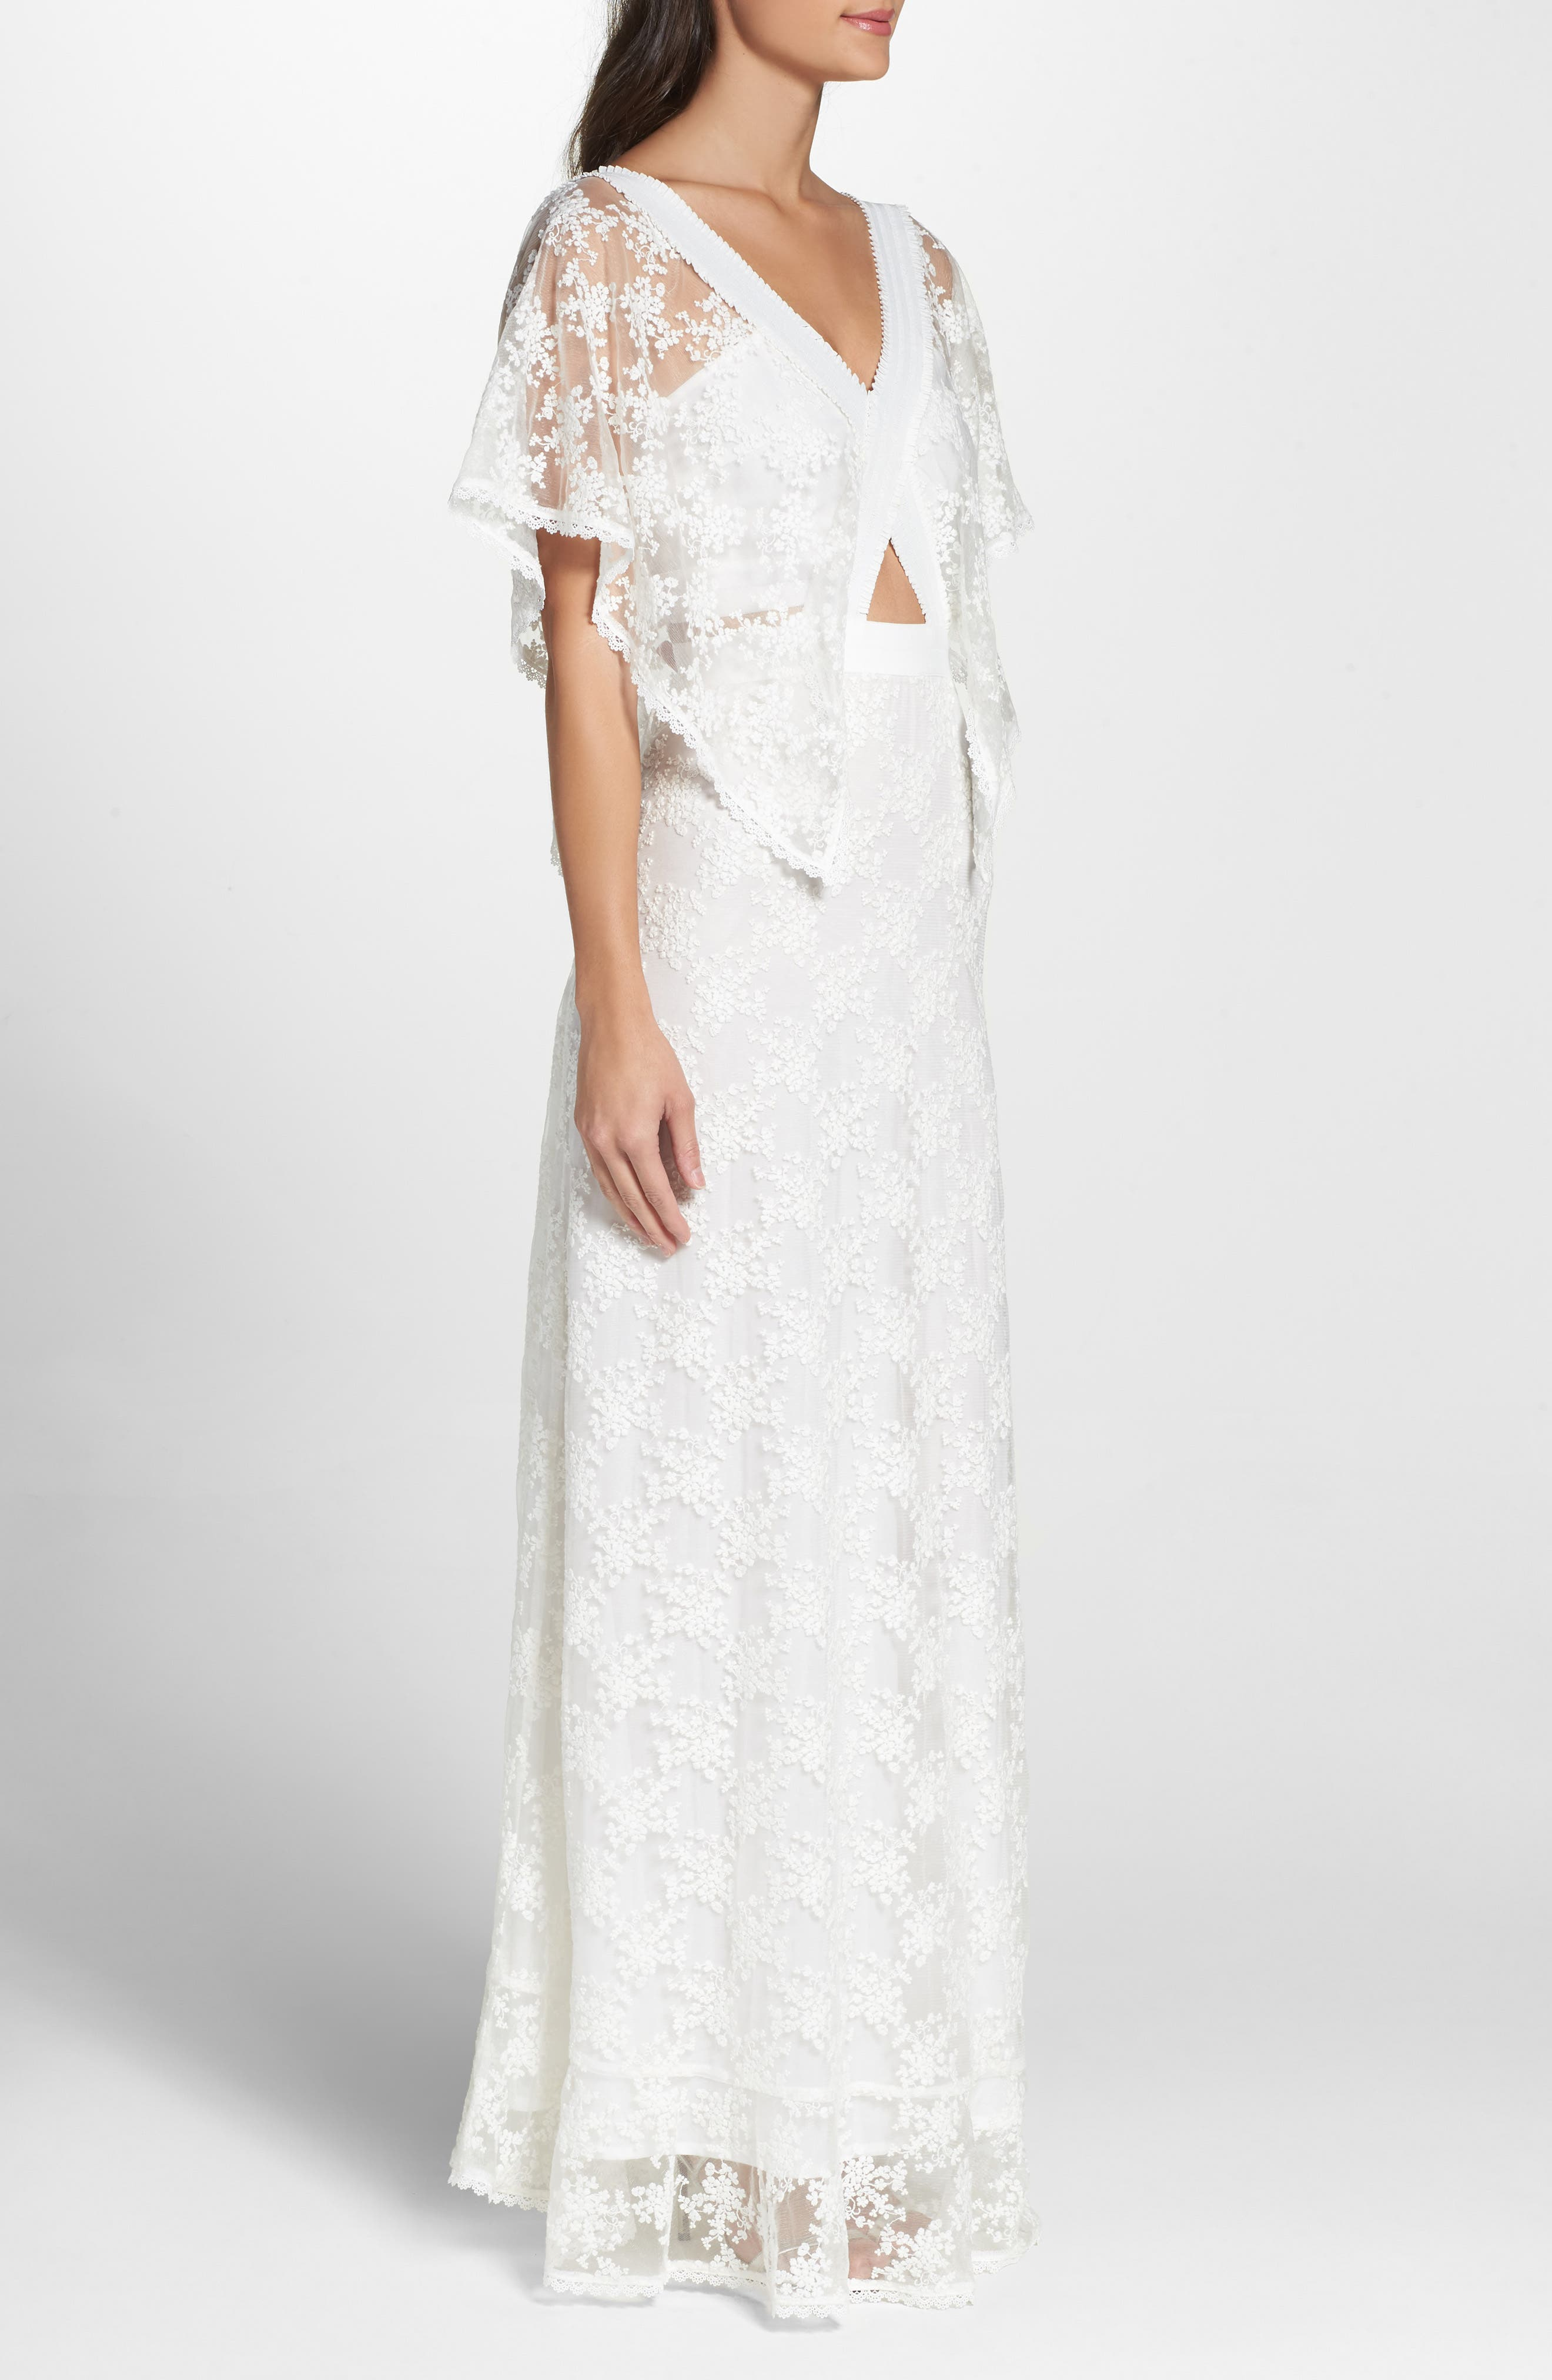 August Handkerchief Sleeve Embroidered Long Dress,                             Alternate thumbnail 3, color,